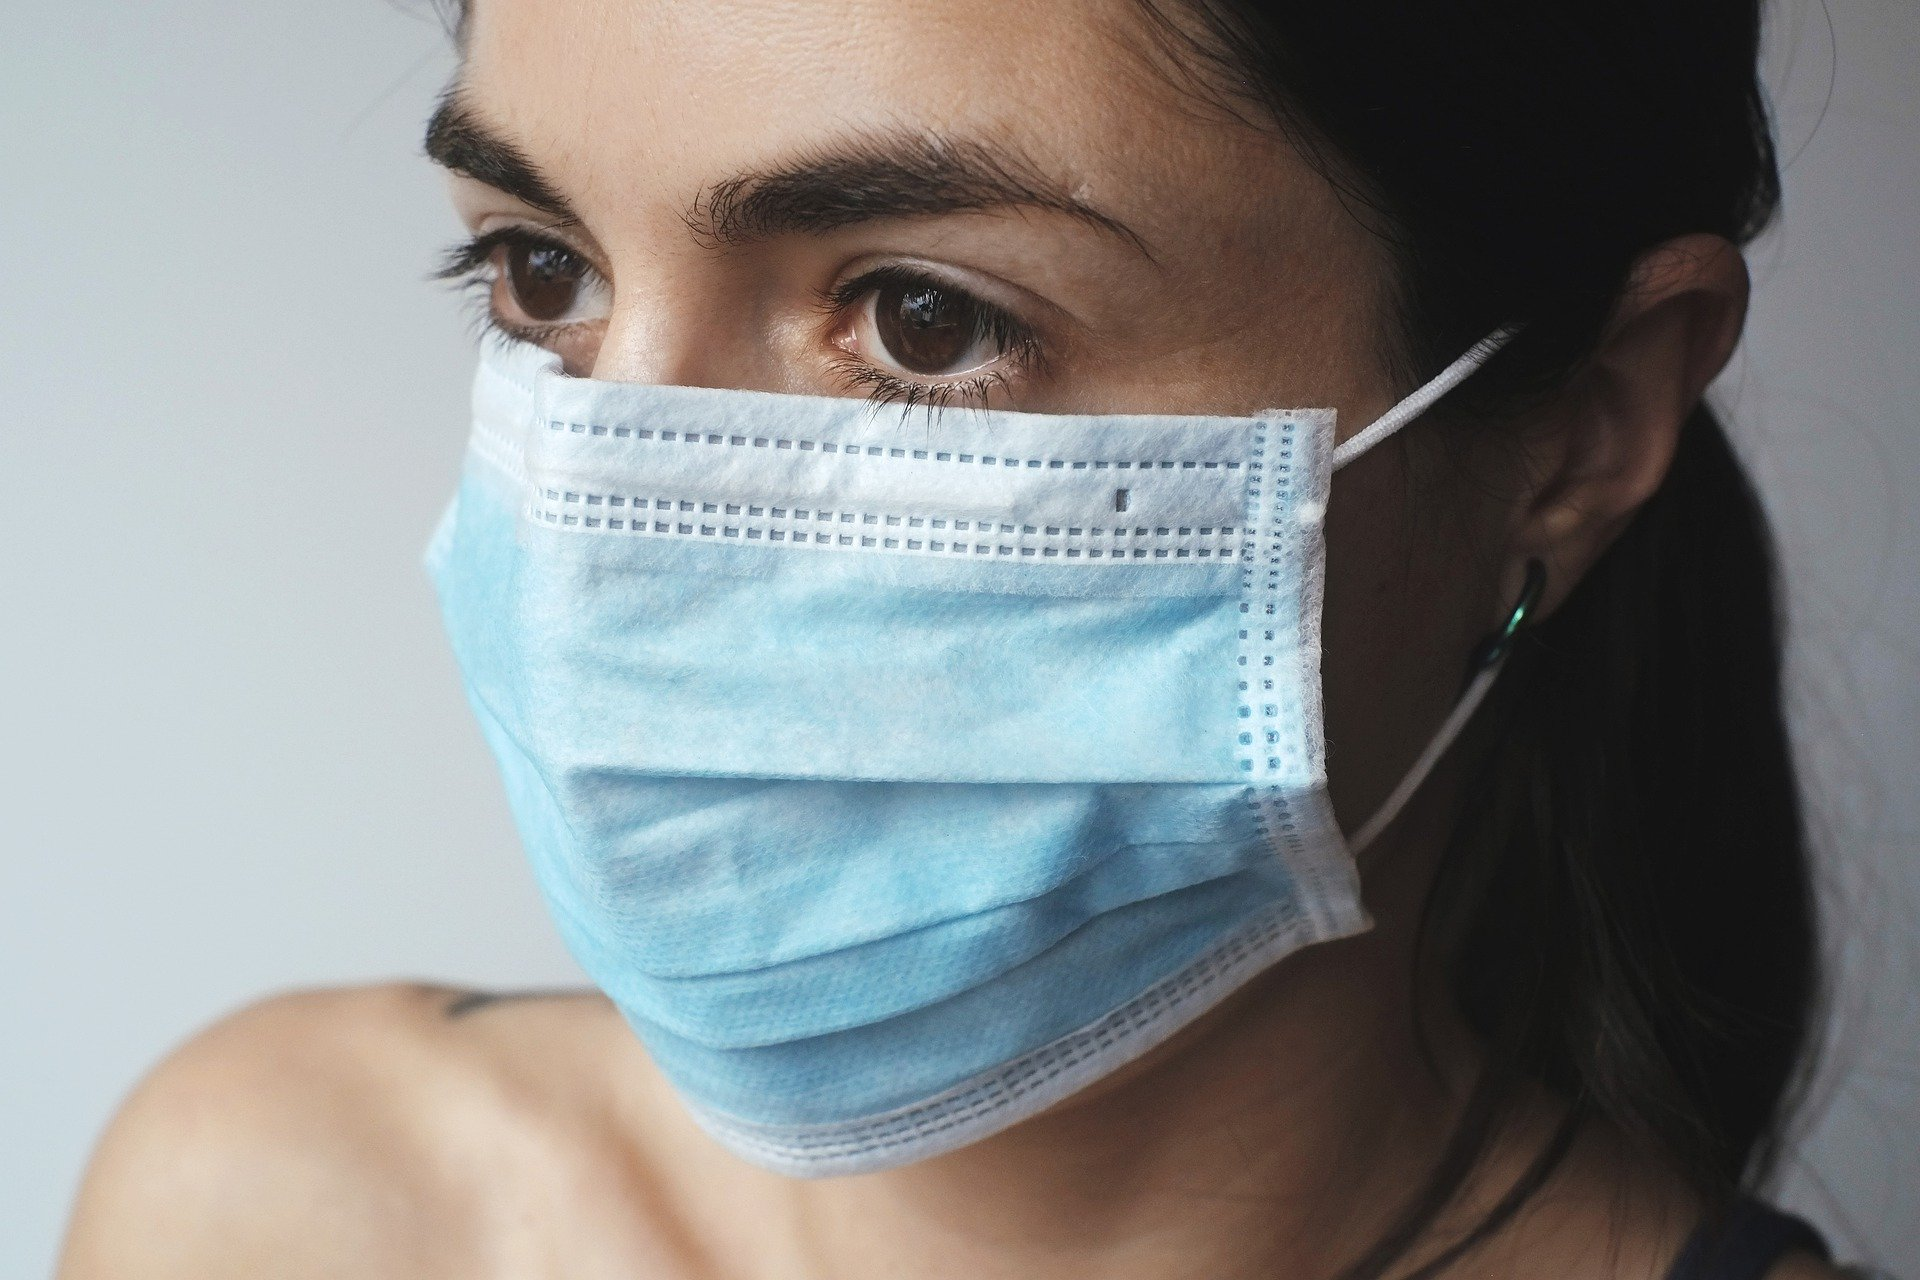 Face Coverings to slow spread of Corona Virus (Covid-19)